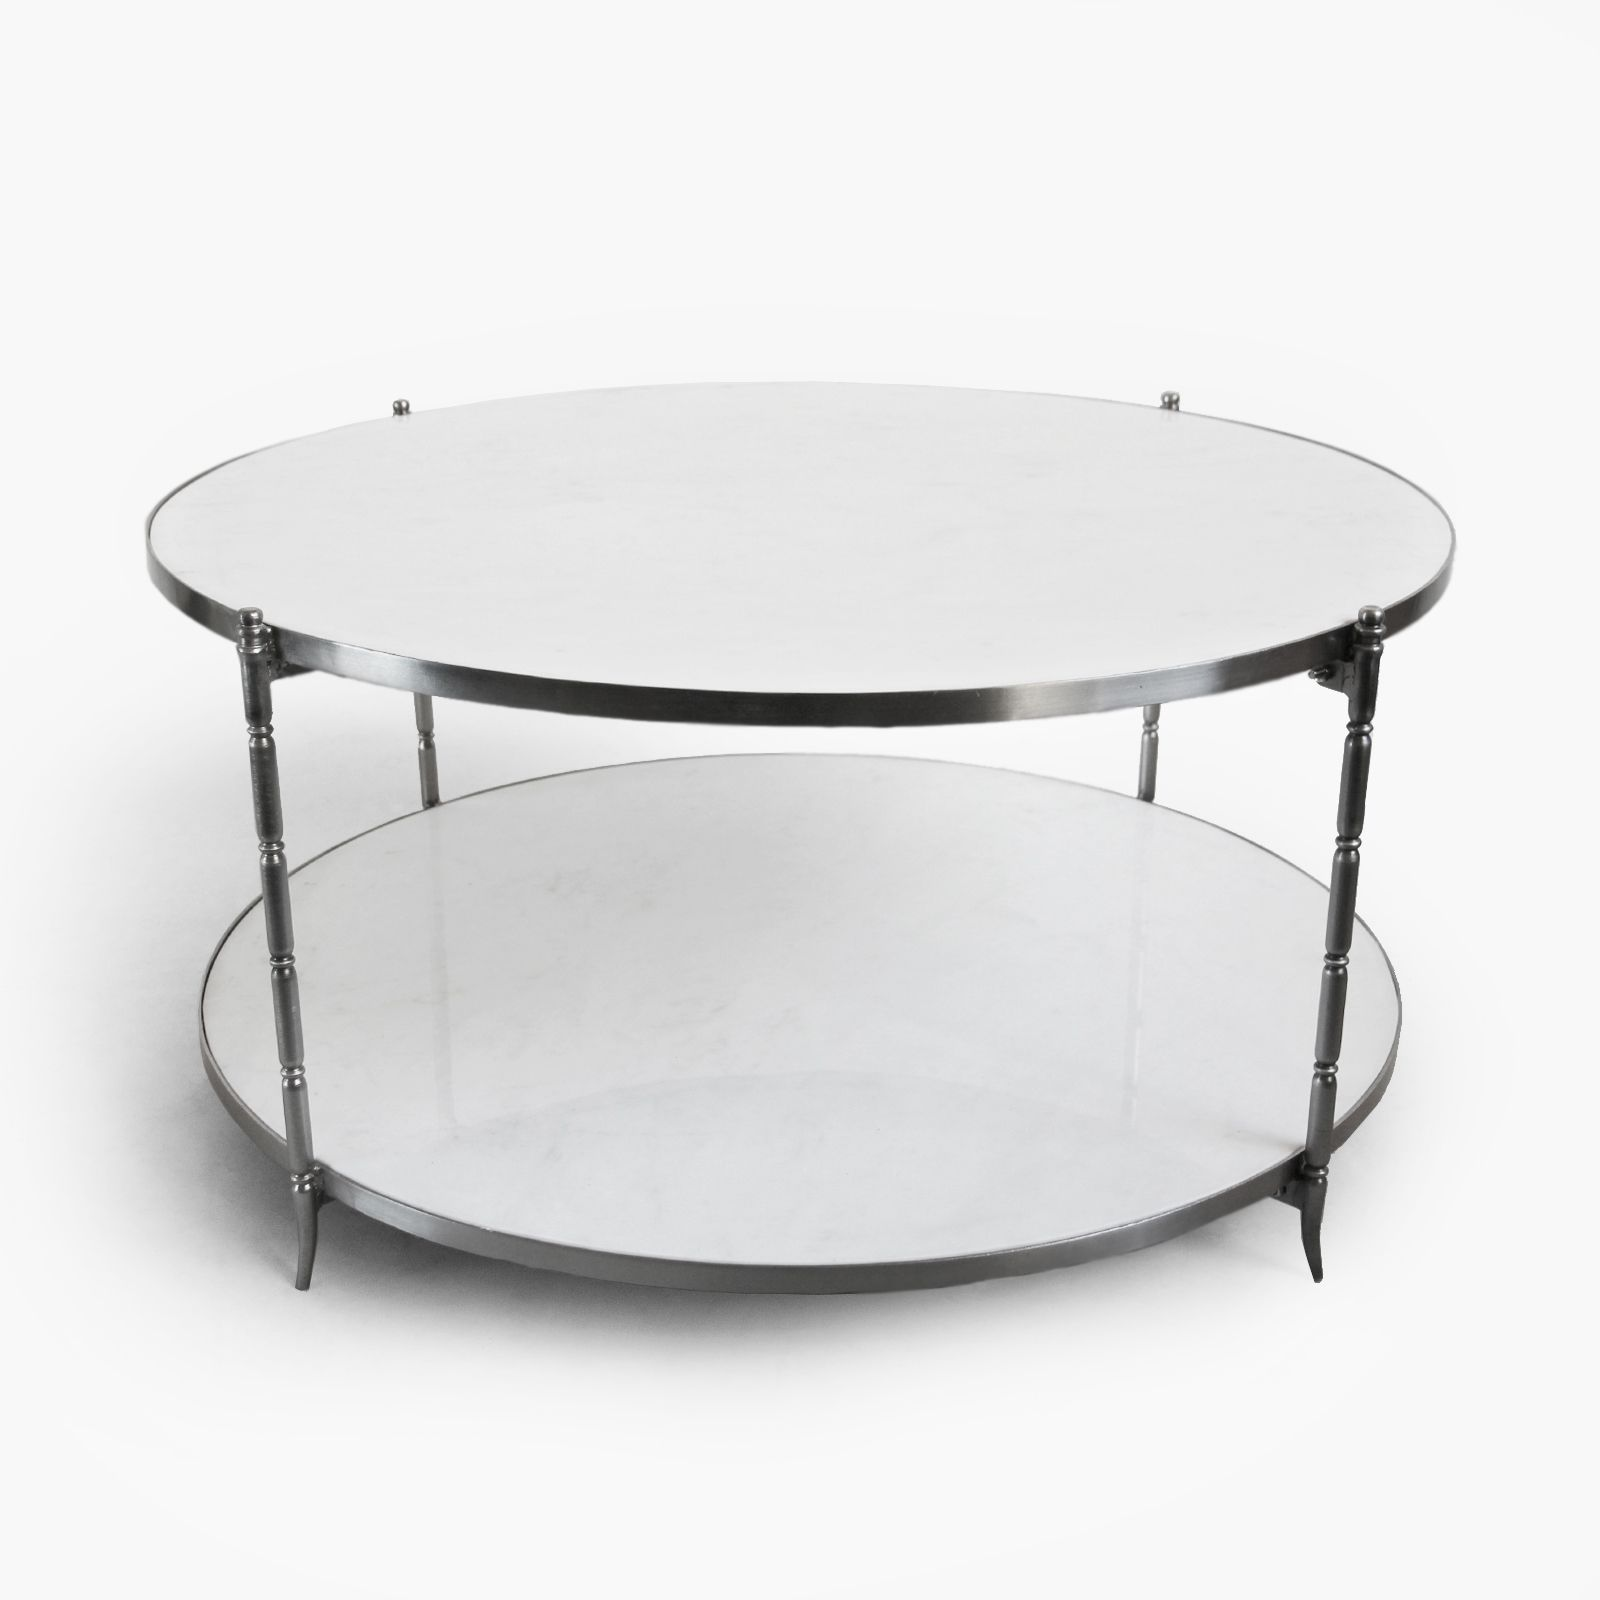 Beautiful Modern White Marble Round Coffee Table With Brushed Nickel Legs Supporting Two Coffee Table Marble Round Coffee Table Round White Marble Coffee Table